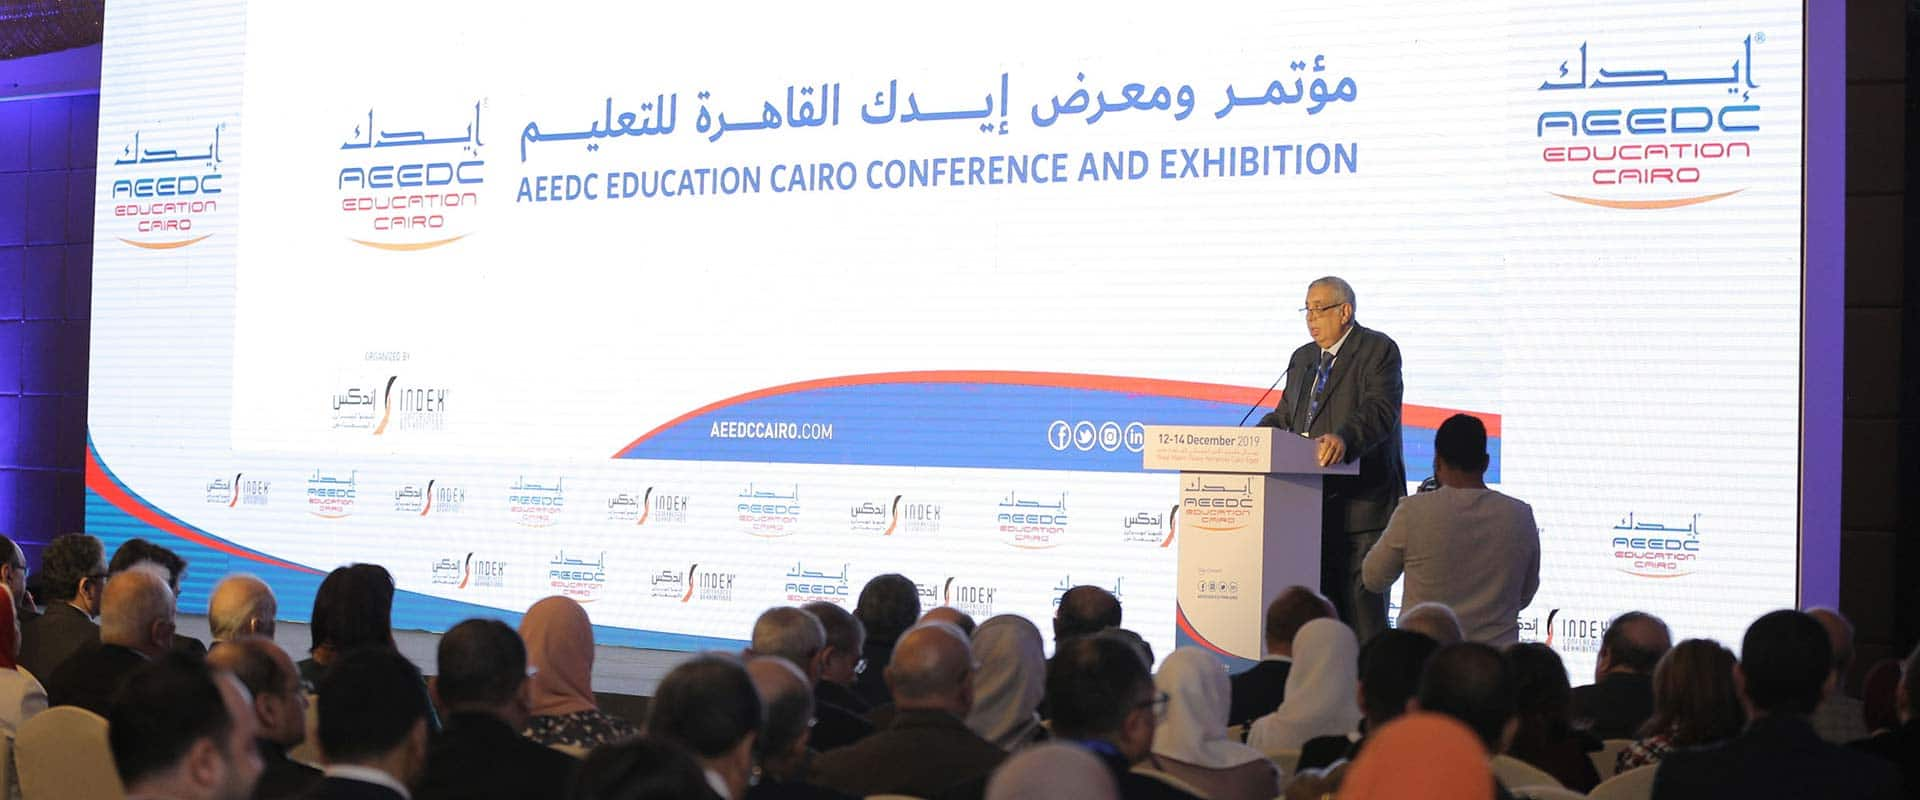 AEEDC Education Cairo: Spreading the AEEDC Word